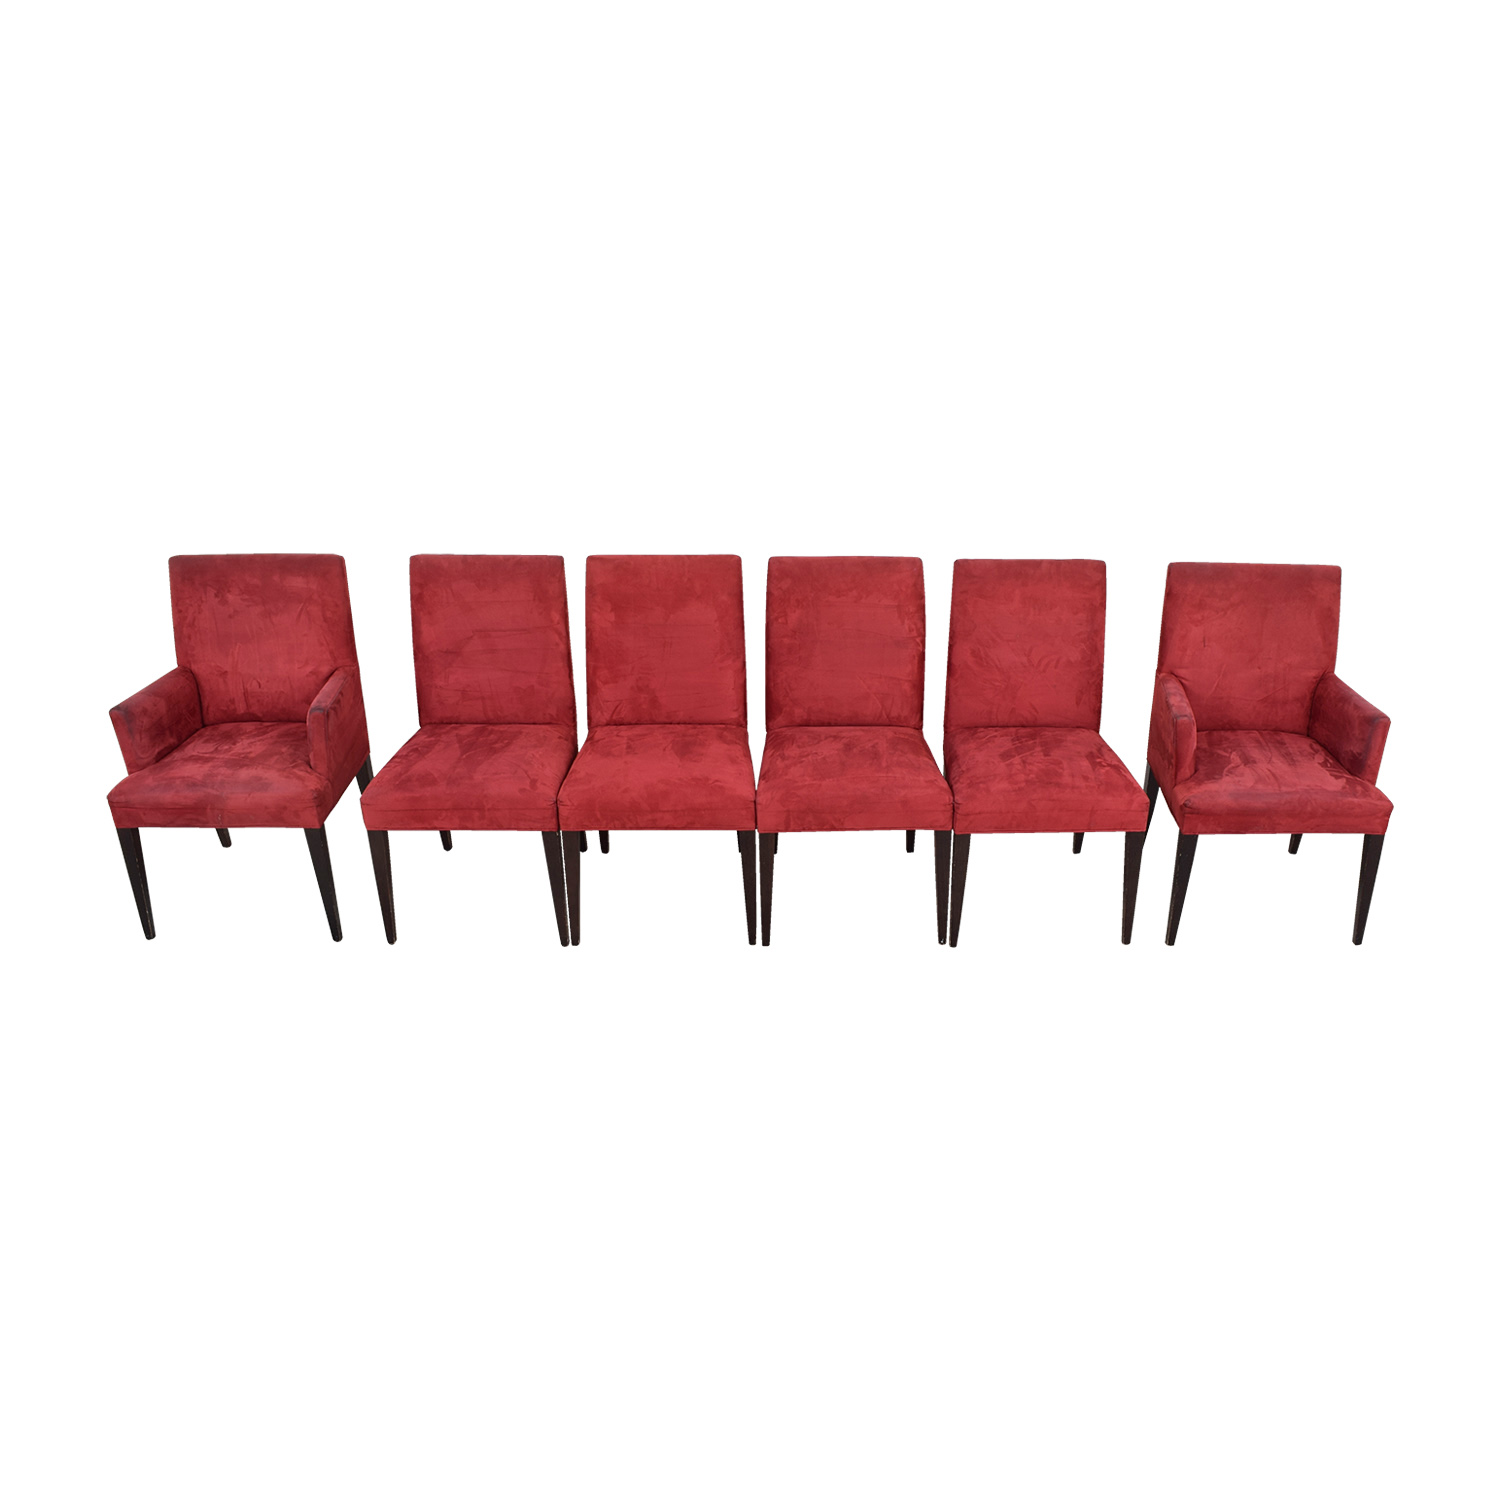 Crate U0026 Barrel Crate U0026 Barrel Microsuede Cranberry Chairs Used